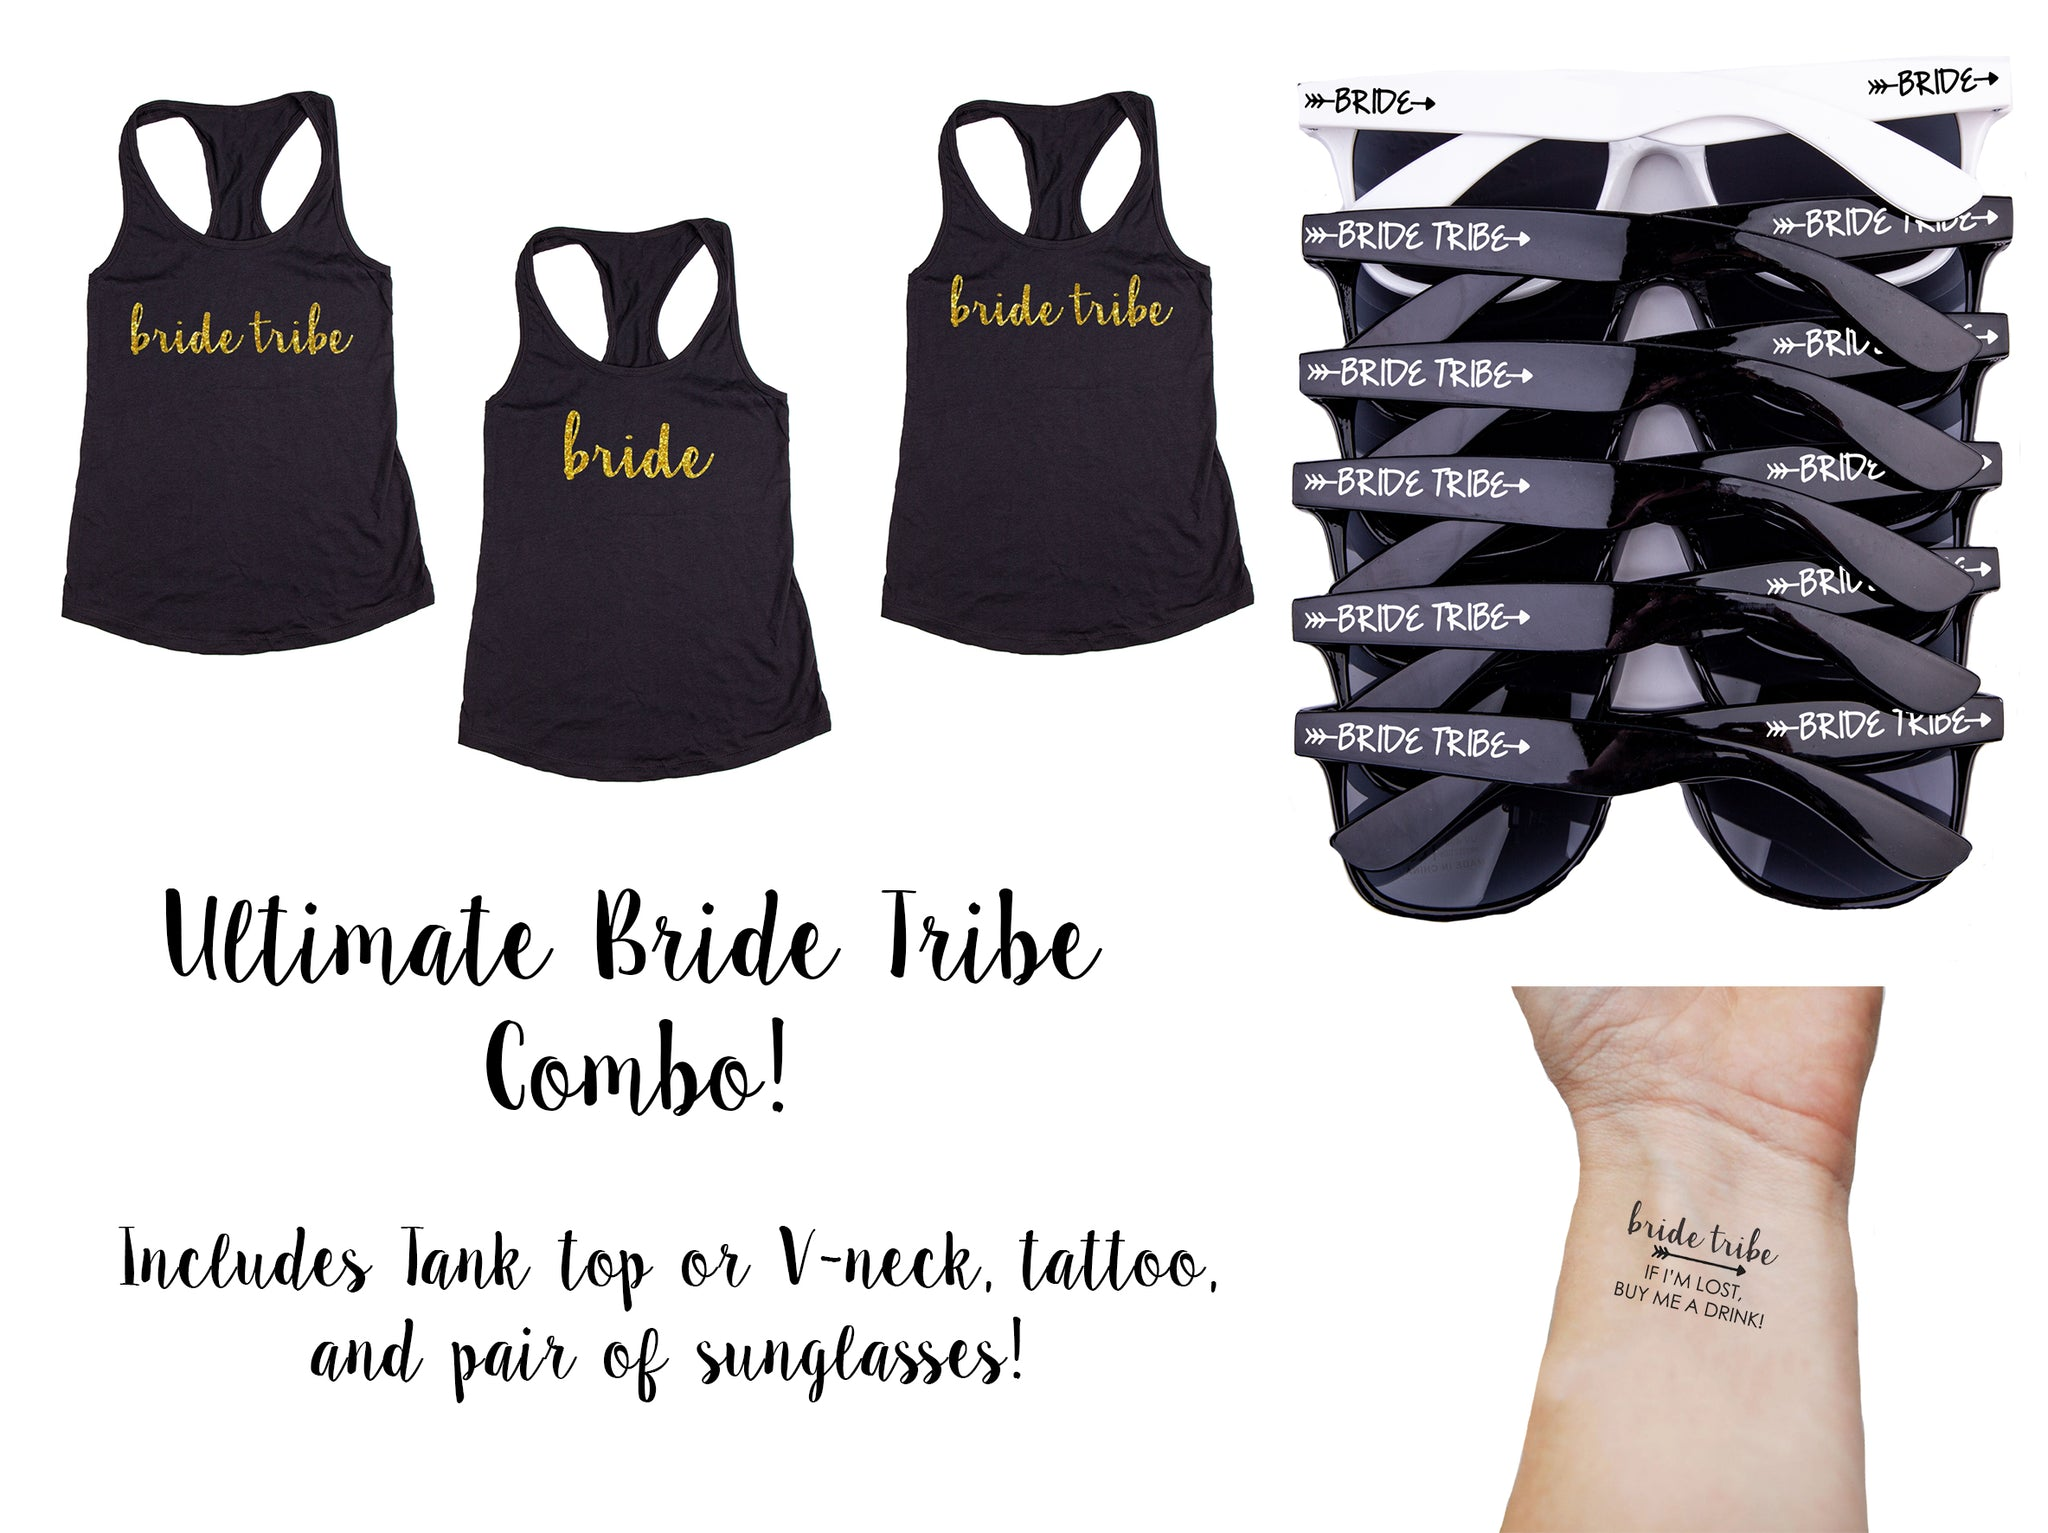 Ultimate Bride Tribe Bachelorette Party Pack- Includes Tank Tops, Sunglasses & Temporary Tattoos